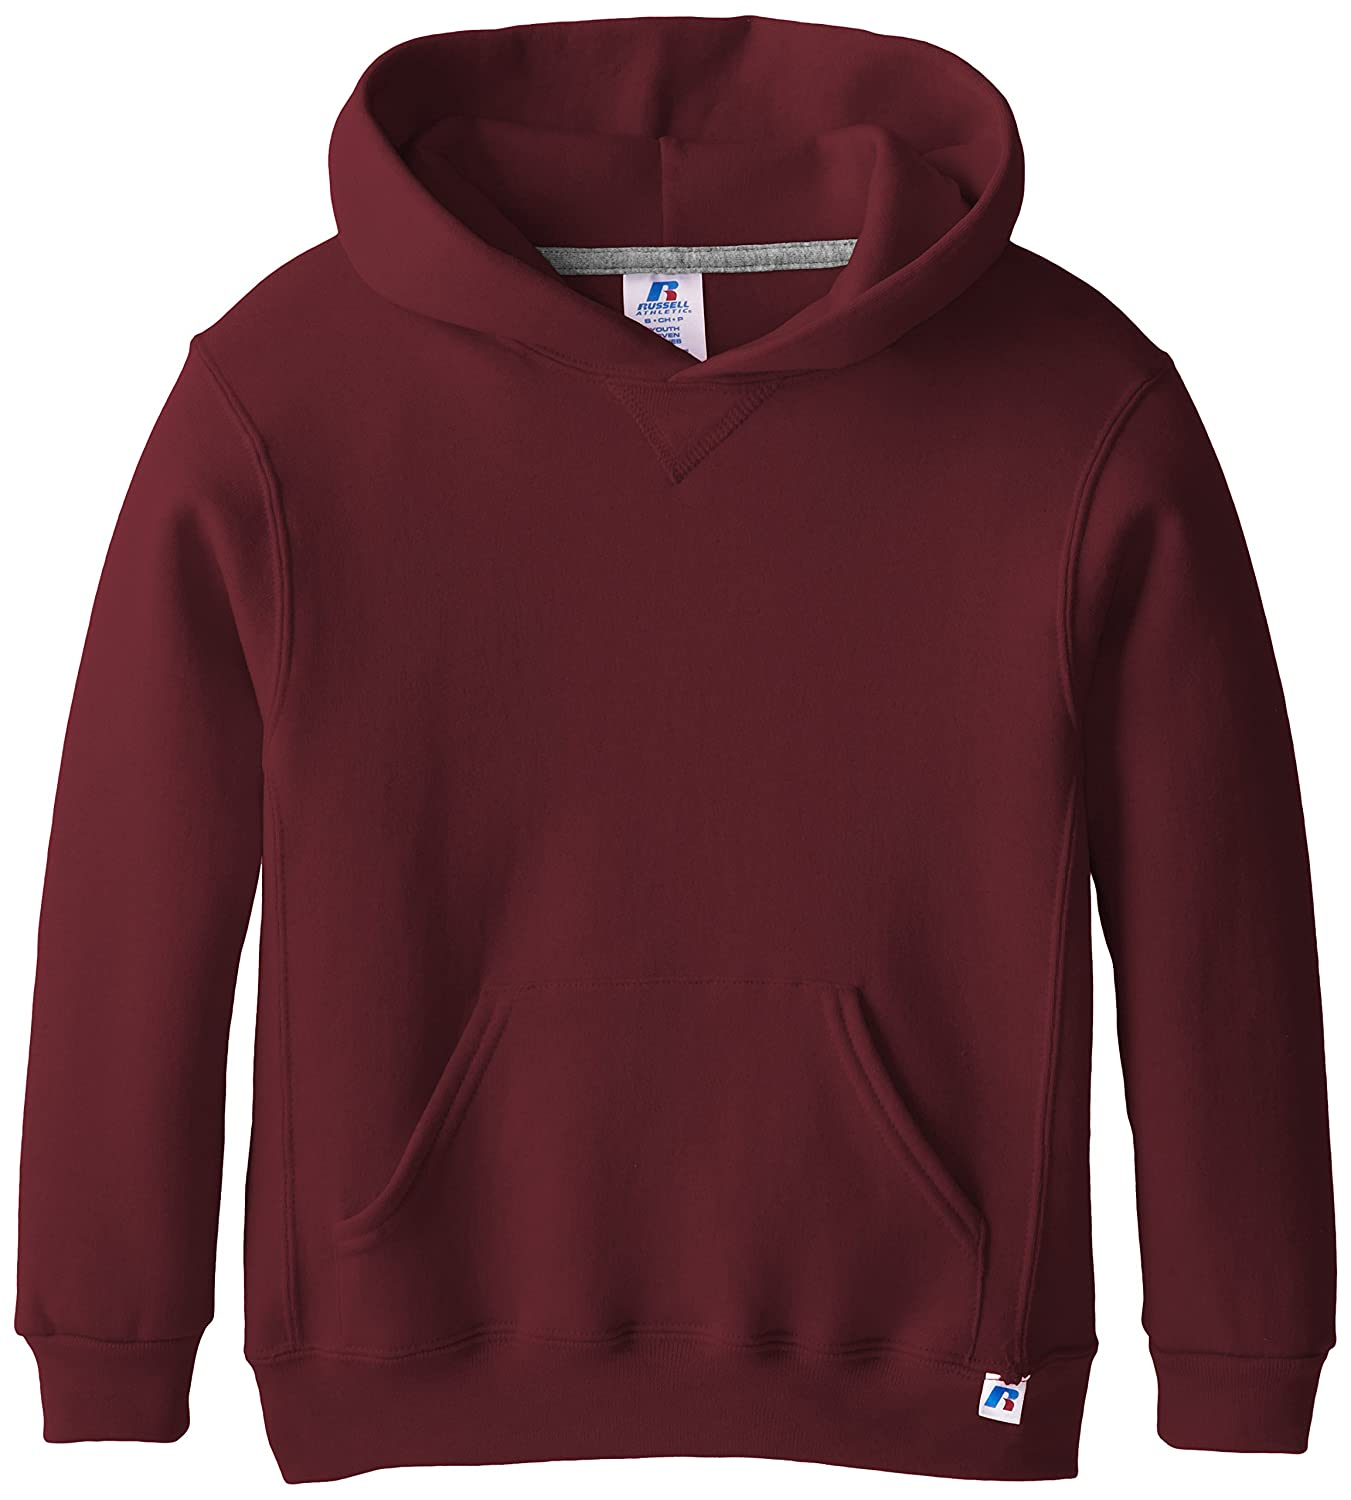 83a073fa58fd Amazon.com  Russell Athletic Big Boys  Fleece Pullover Hood  Clothing